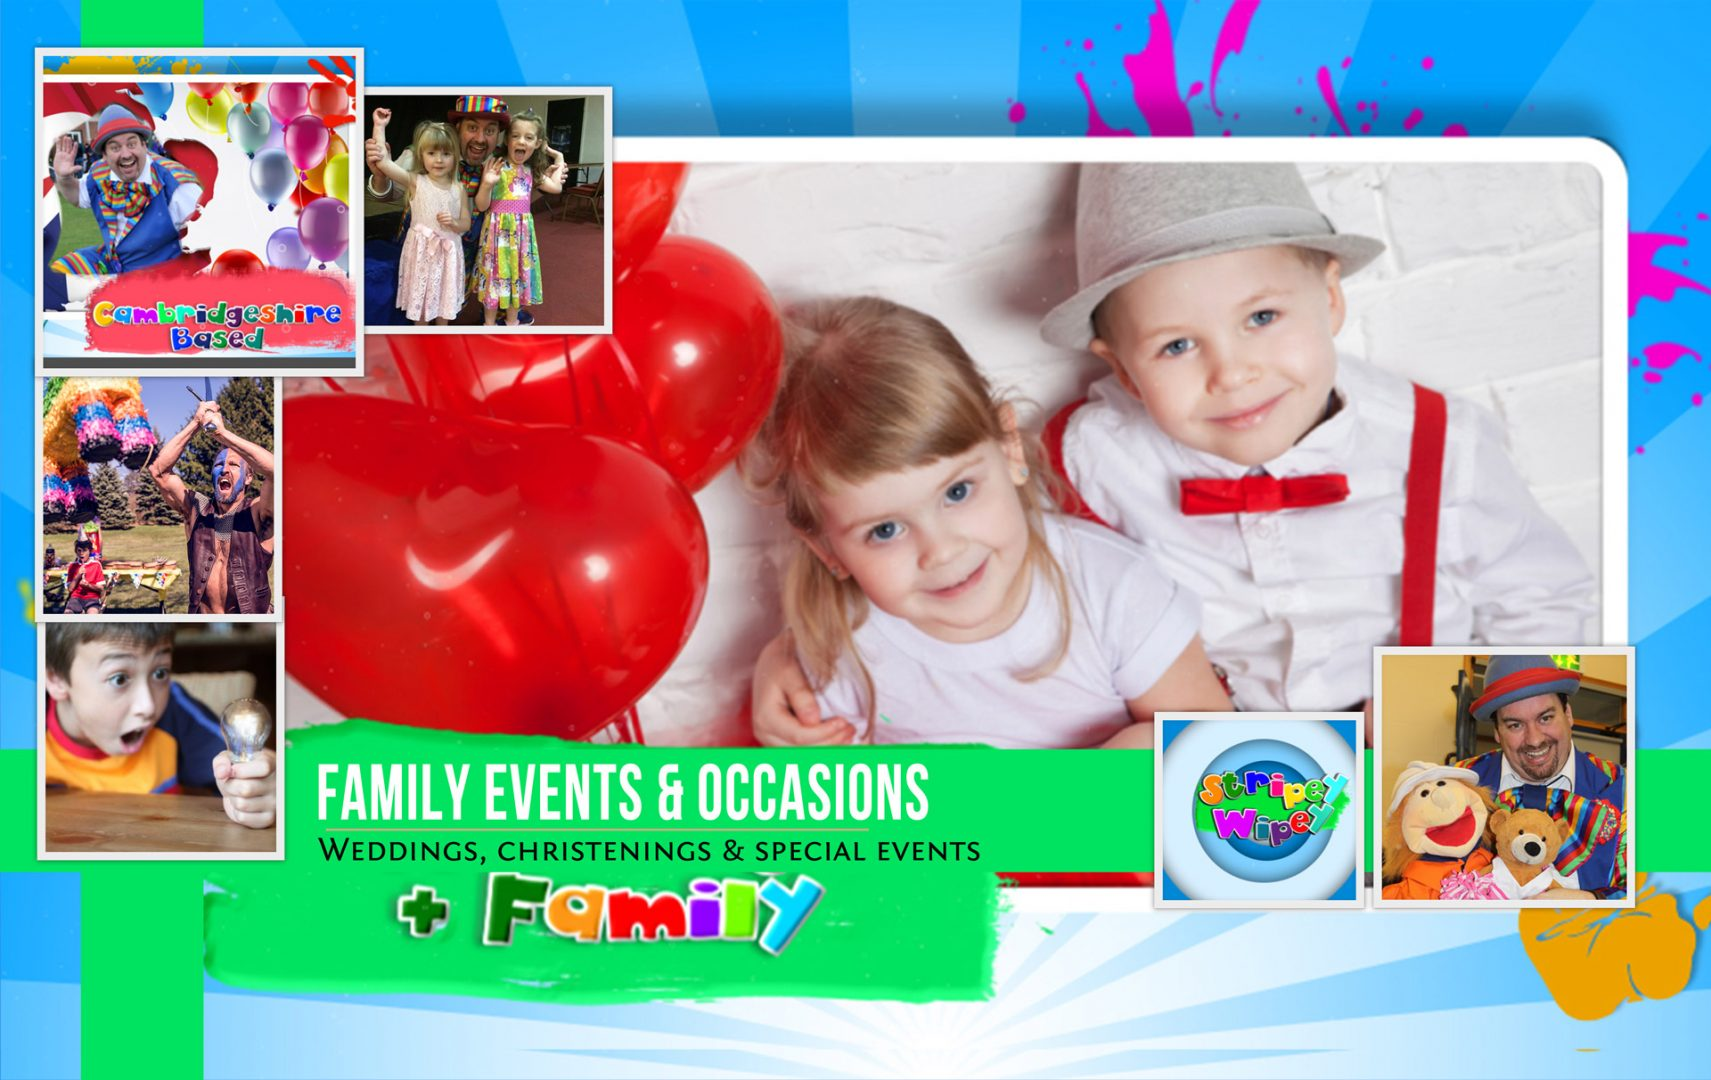 Family Events, Weddings, Christenings, Retirement Parties